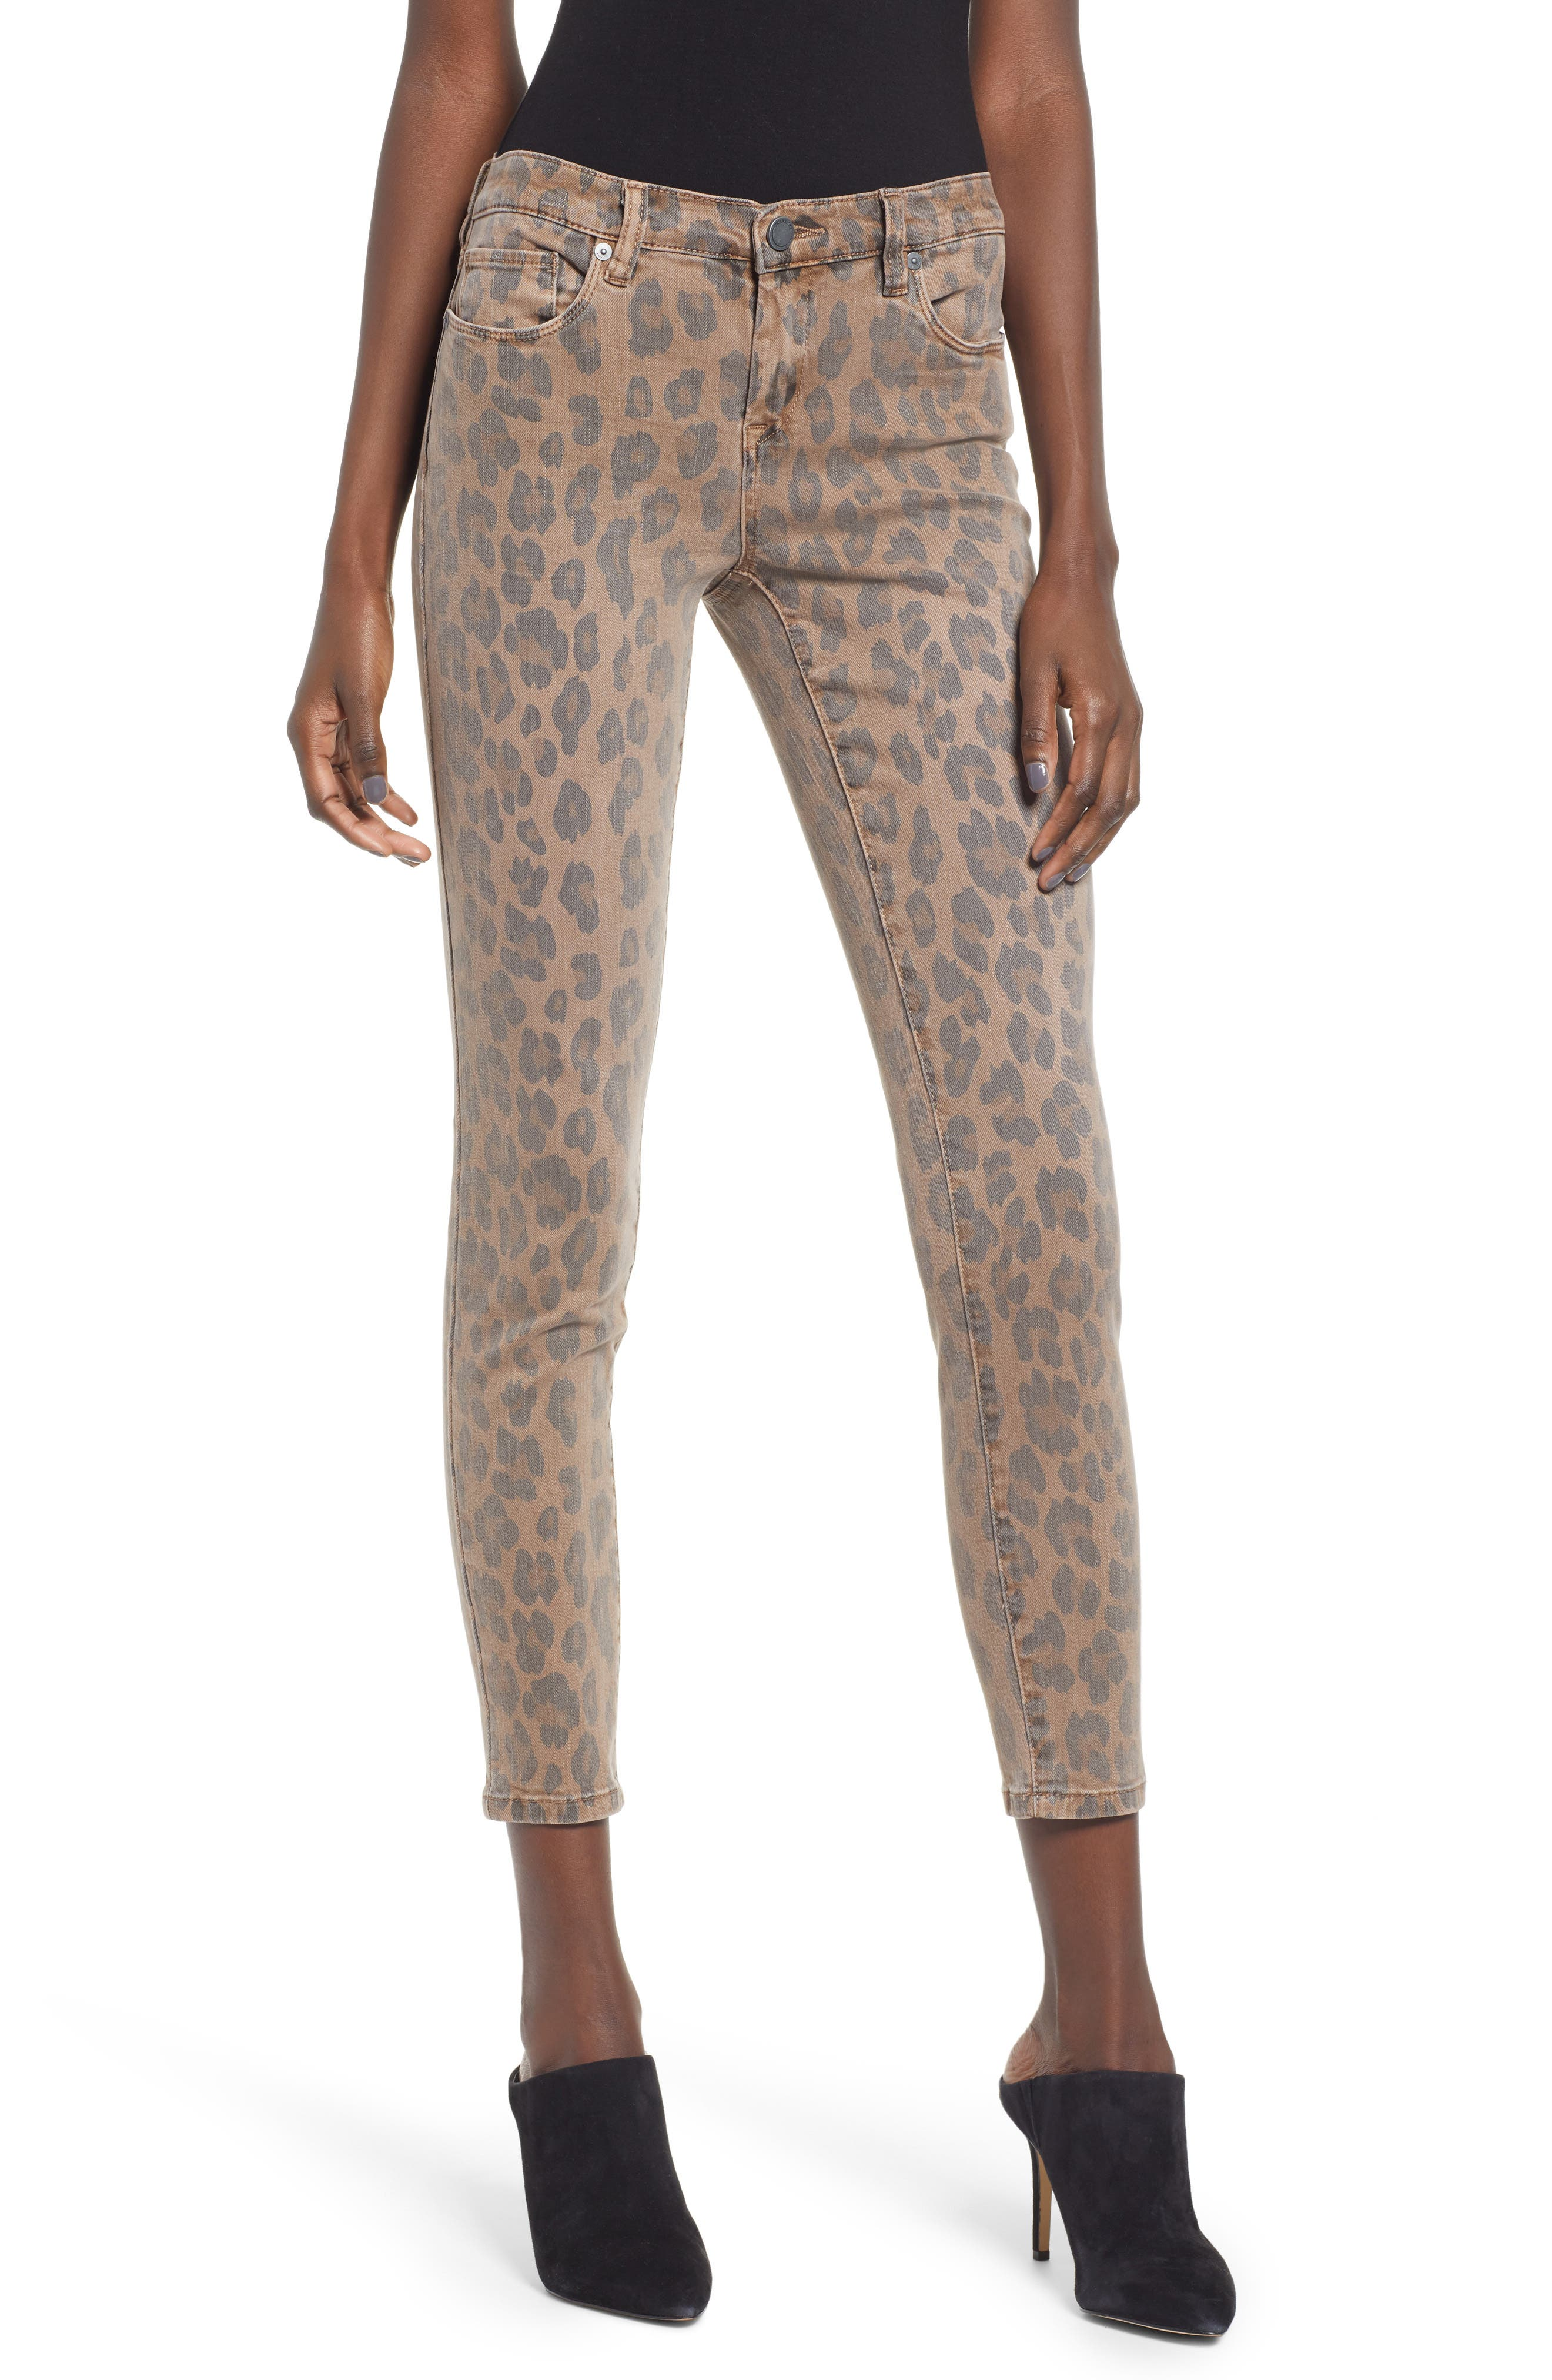 BLANKNYC, The Reade Leopard Crop Skinny Jeans, Main thumbnail 1, color, CATWALK